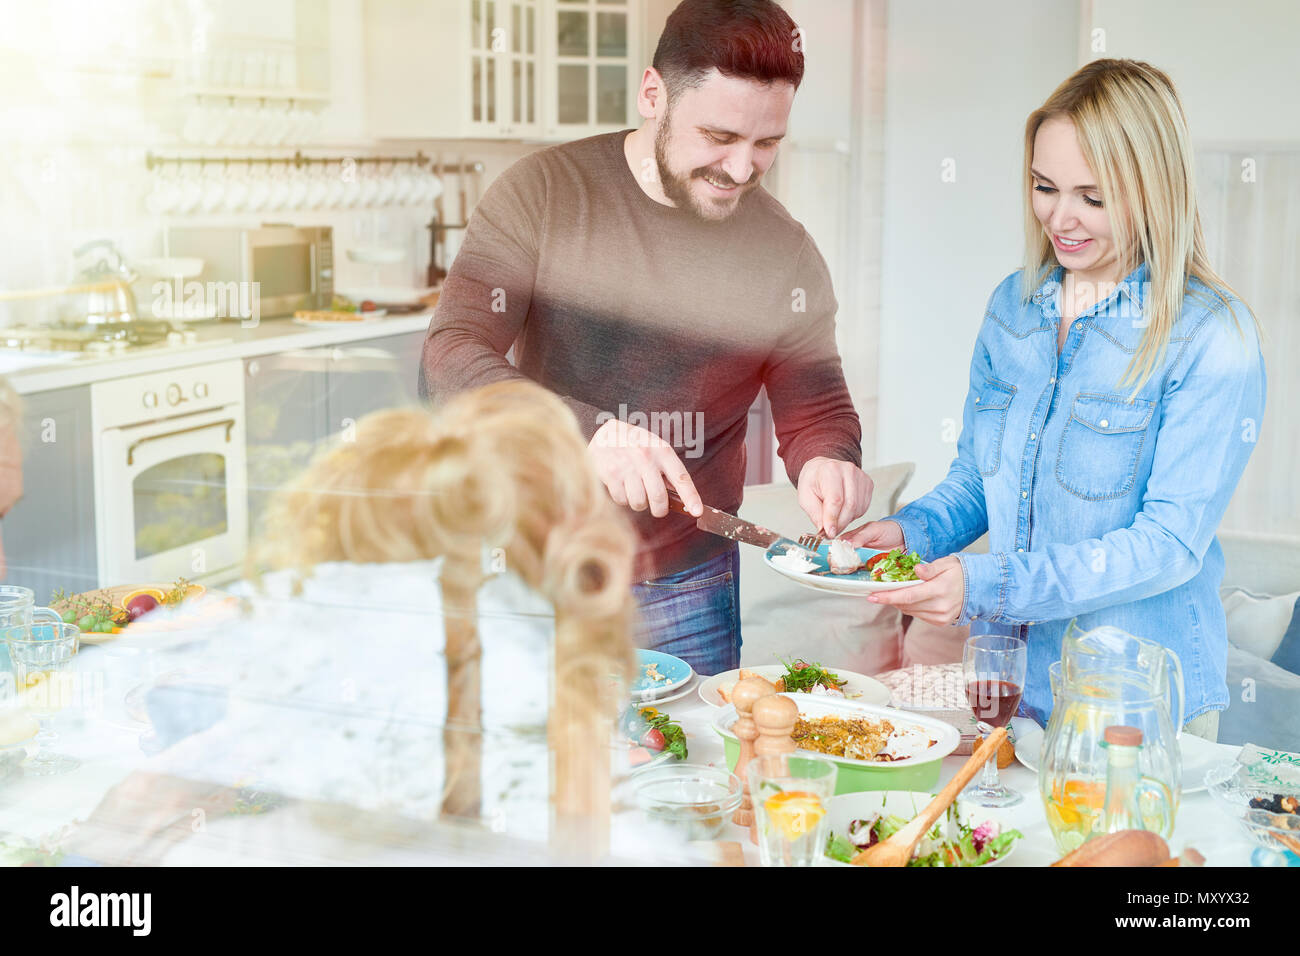 Portrait of happy couple serving food while enjoying family dinner at home in sunlight - Stock Image